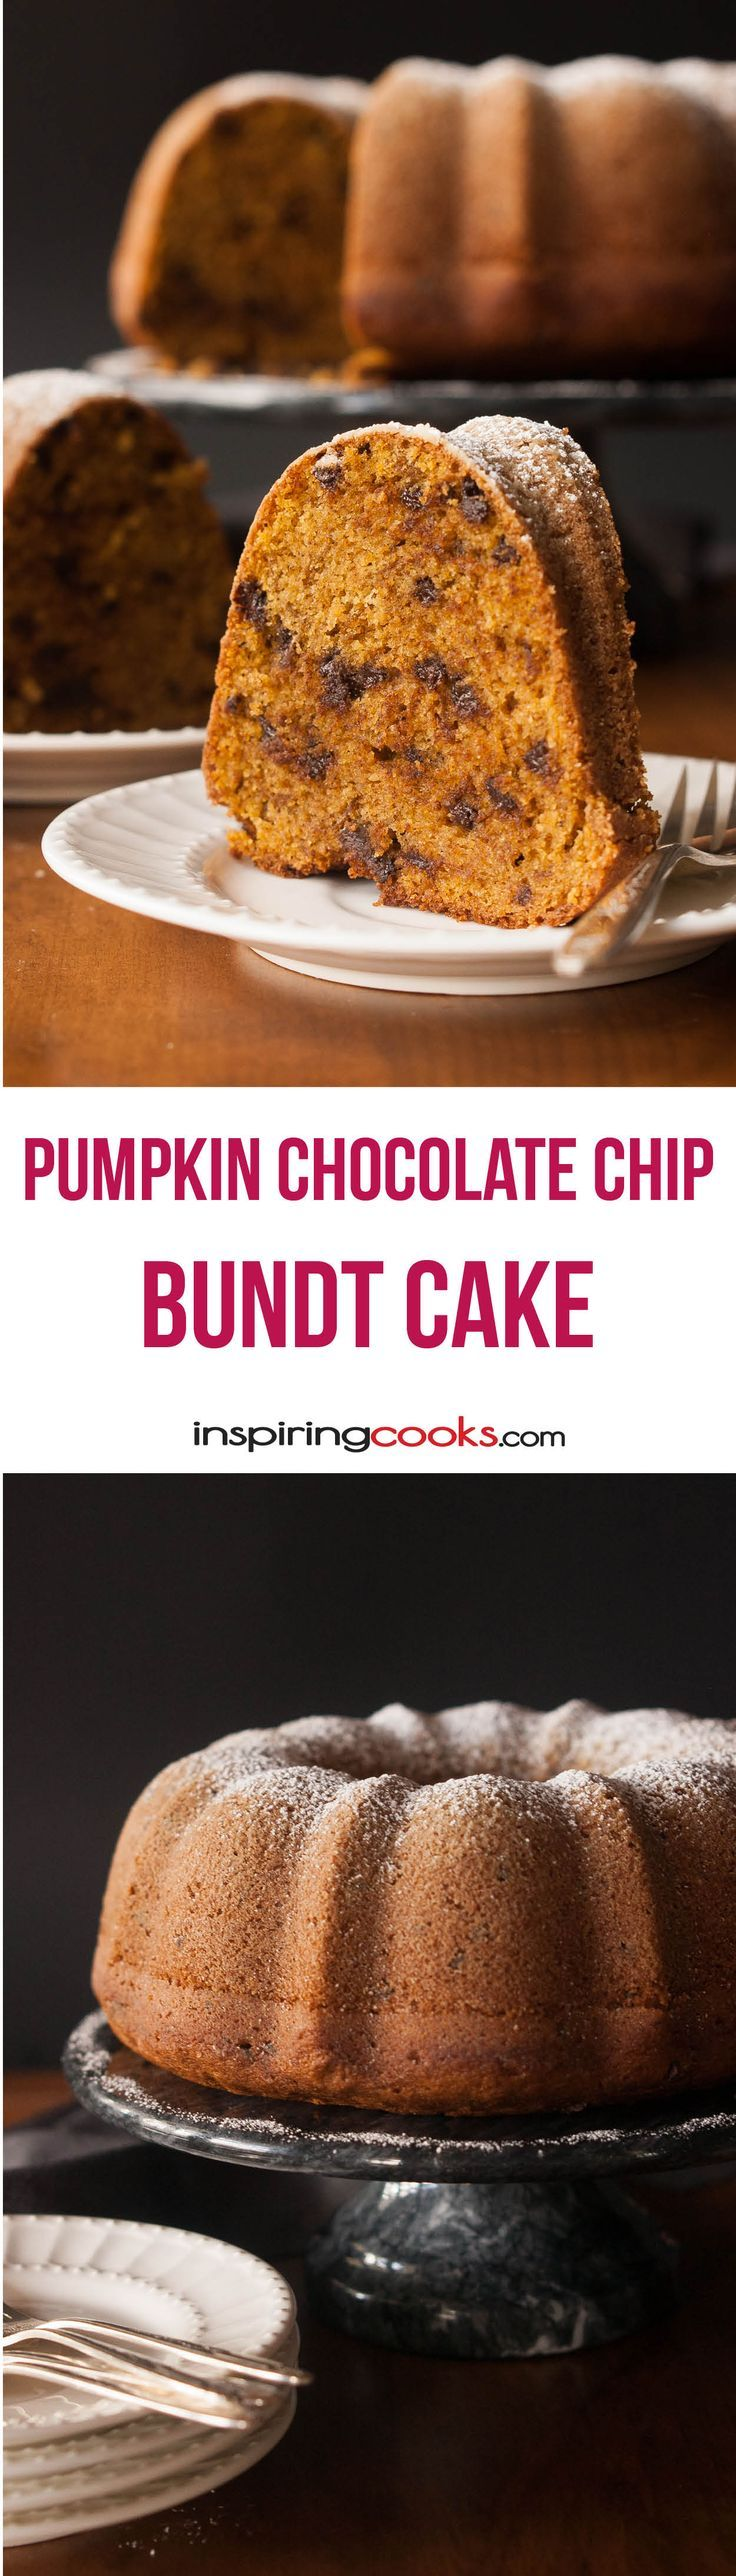 This is an often requested birthday cake in my family. We all love it year-round. The combination of the moist pumpkin cake and the chocolate chips is the best!